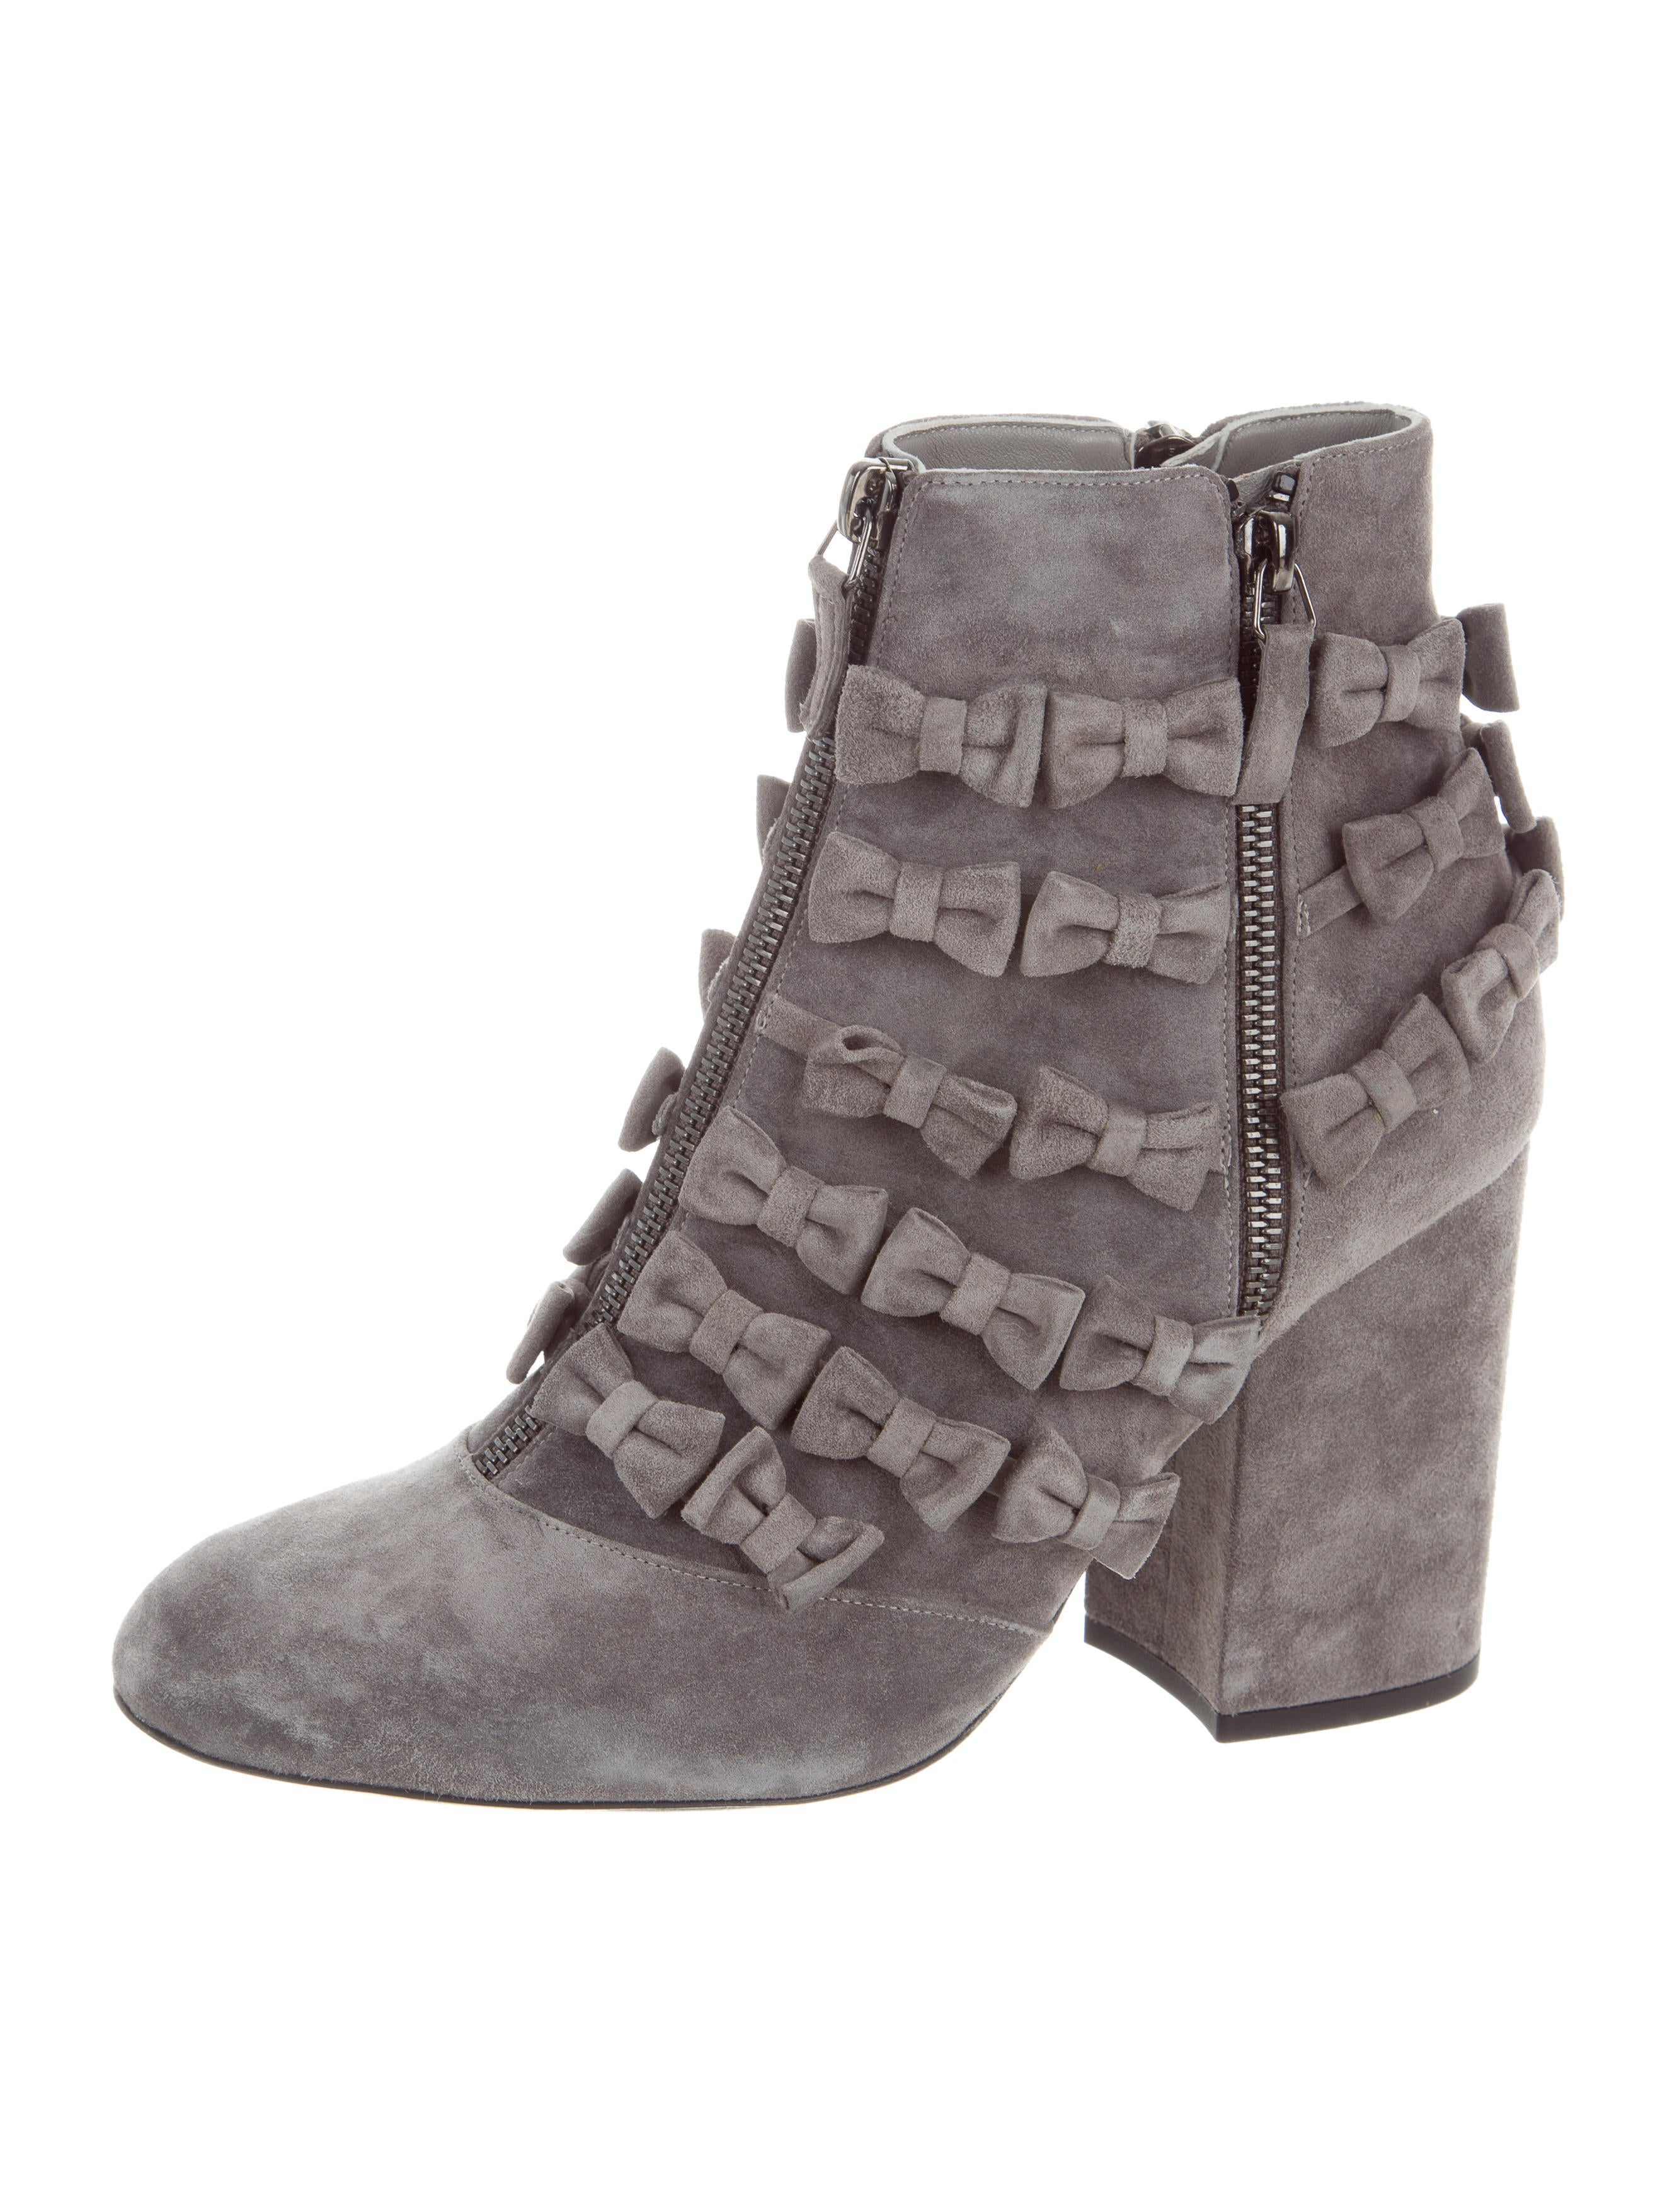 Laurence Dacade 2017 Meryl Suede Bow Ankle Boots under $60 online P2yY5vs